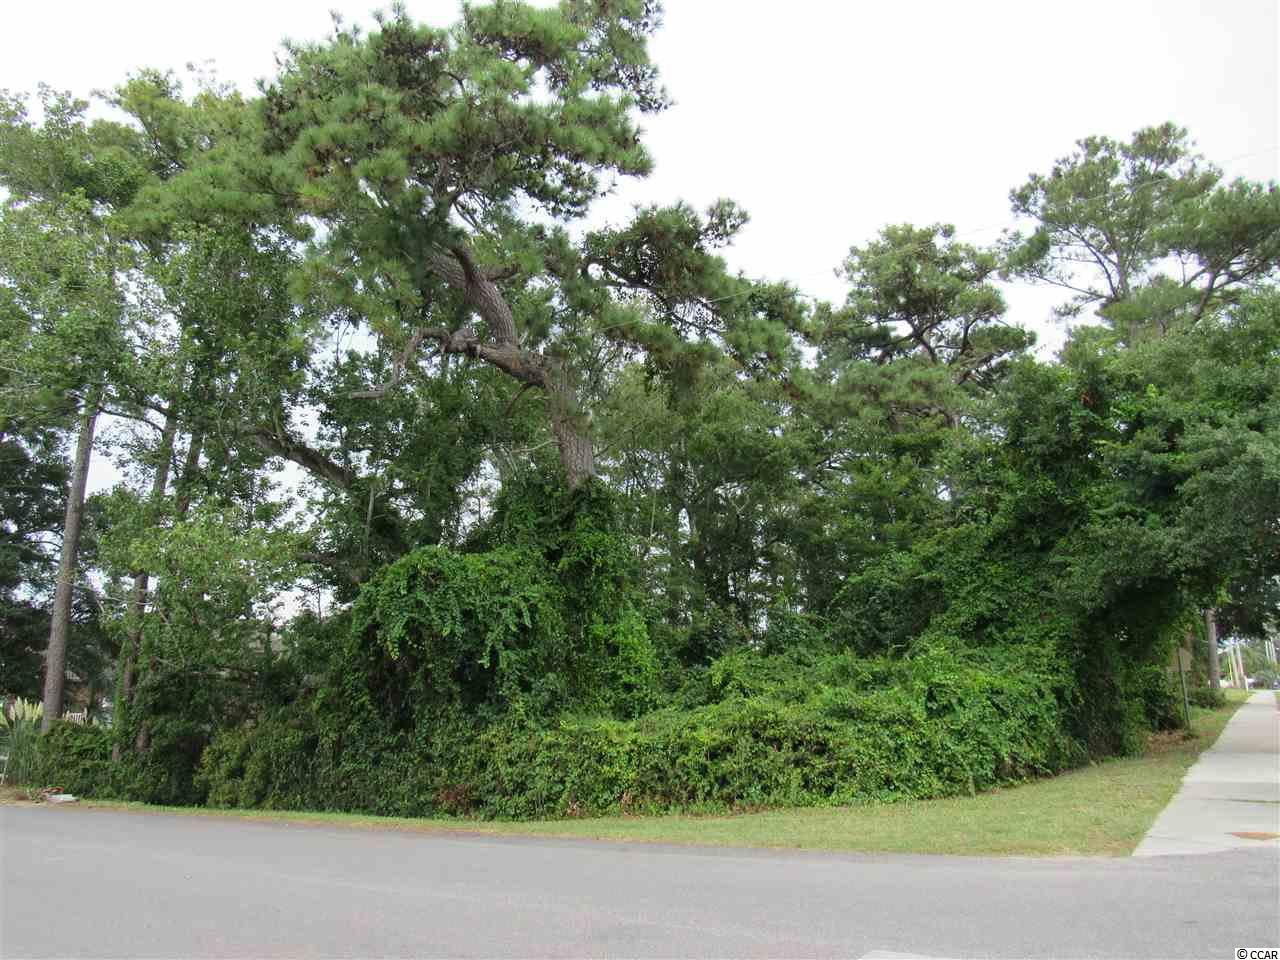 Great location to build the house of your dreams! The lot has .59 acres in the desirable Ocean Drive Beach section of North Myrtle Beach.  Walking distance or a short golf cart ride to the beach. Close to shopping, restaurants, attractions, entertainment and of course the beautiful beach.  Lot has road frontage on 11th Avenue South, South Hillside Road and 12th Avenue South.  Flood Zone X = Minimal Flood Hazard!